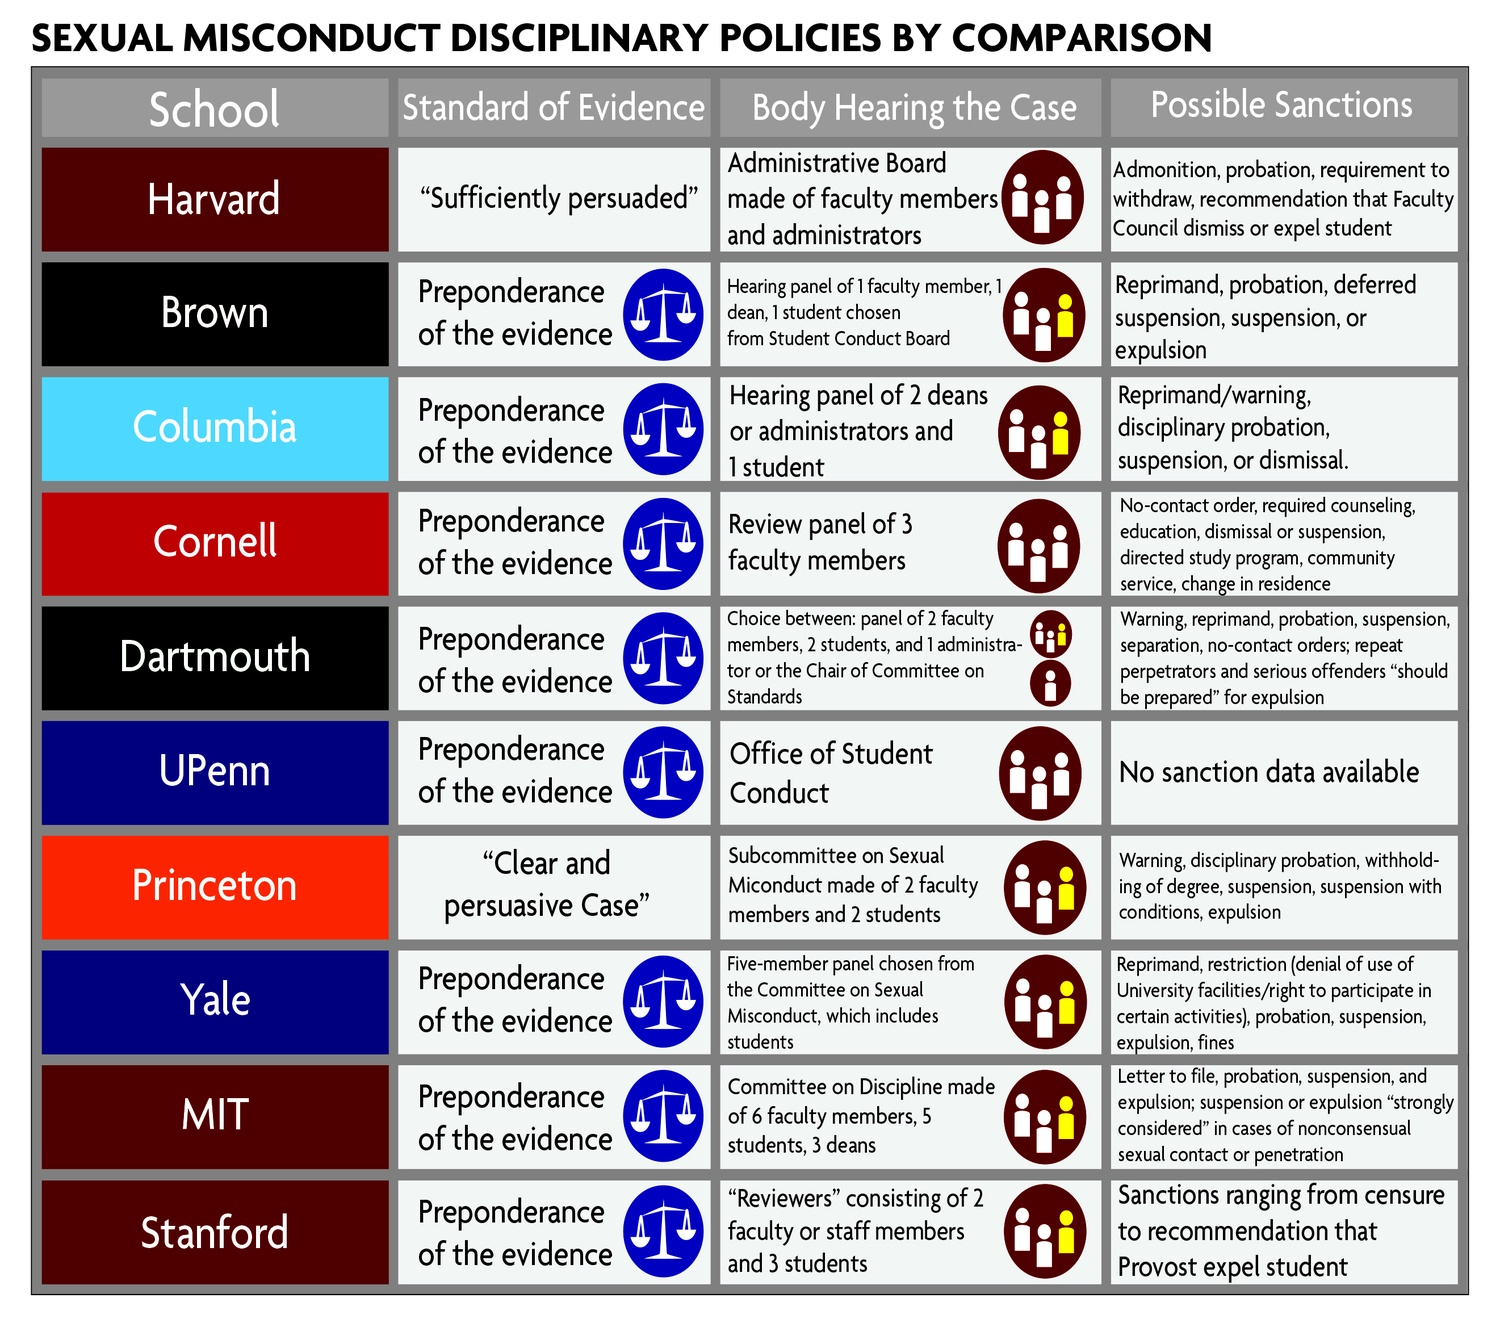 Sexual Misconduct Disciplinary Policies By Comparison